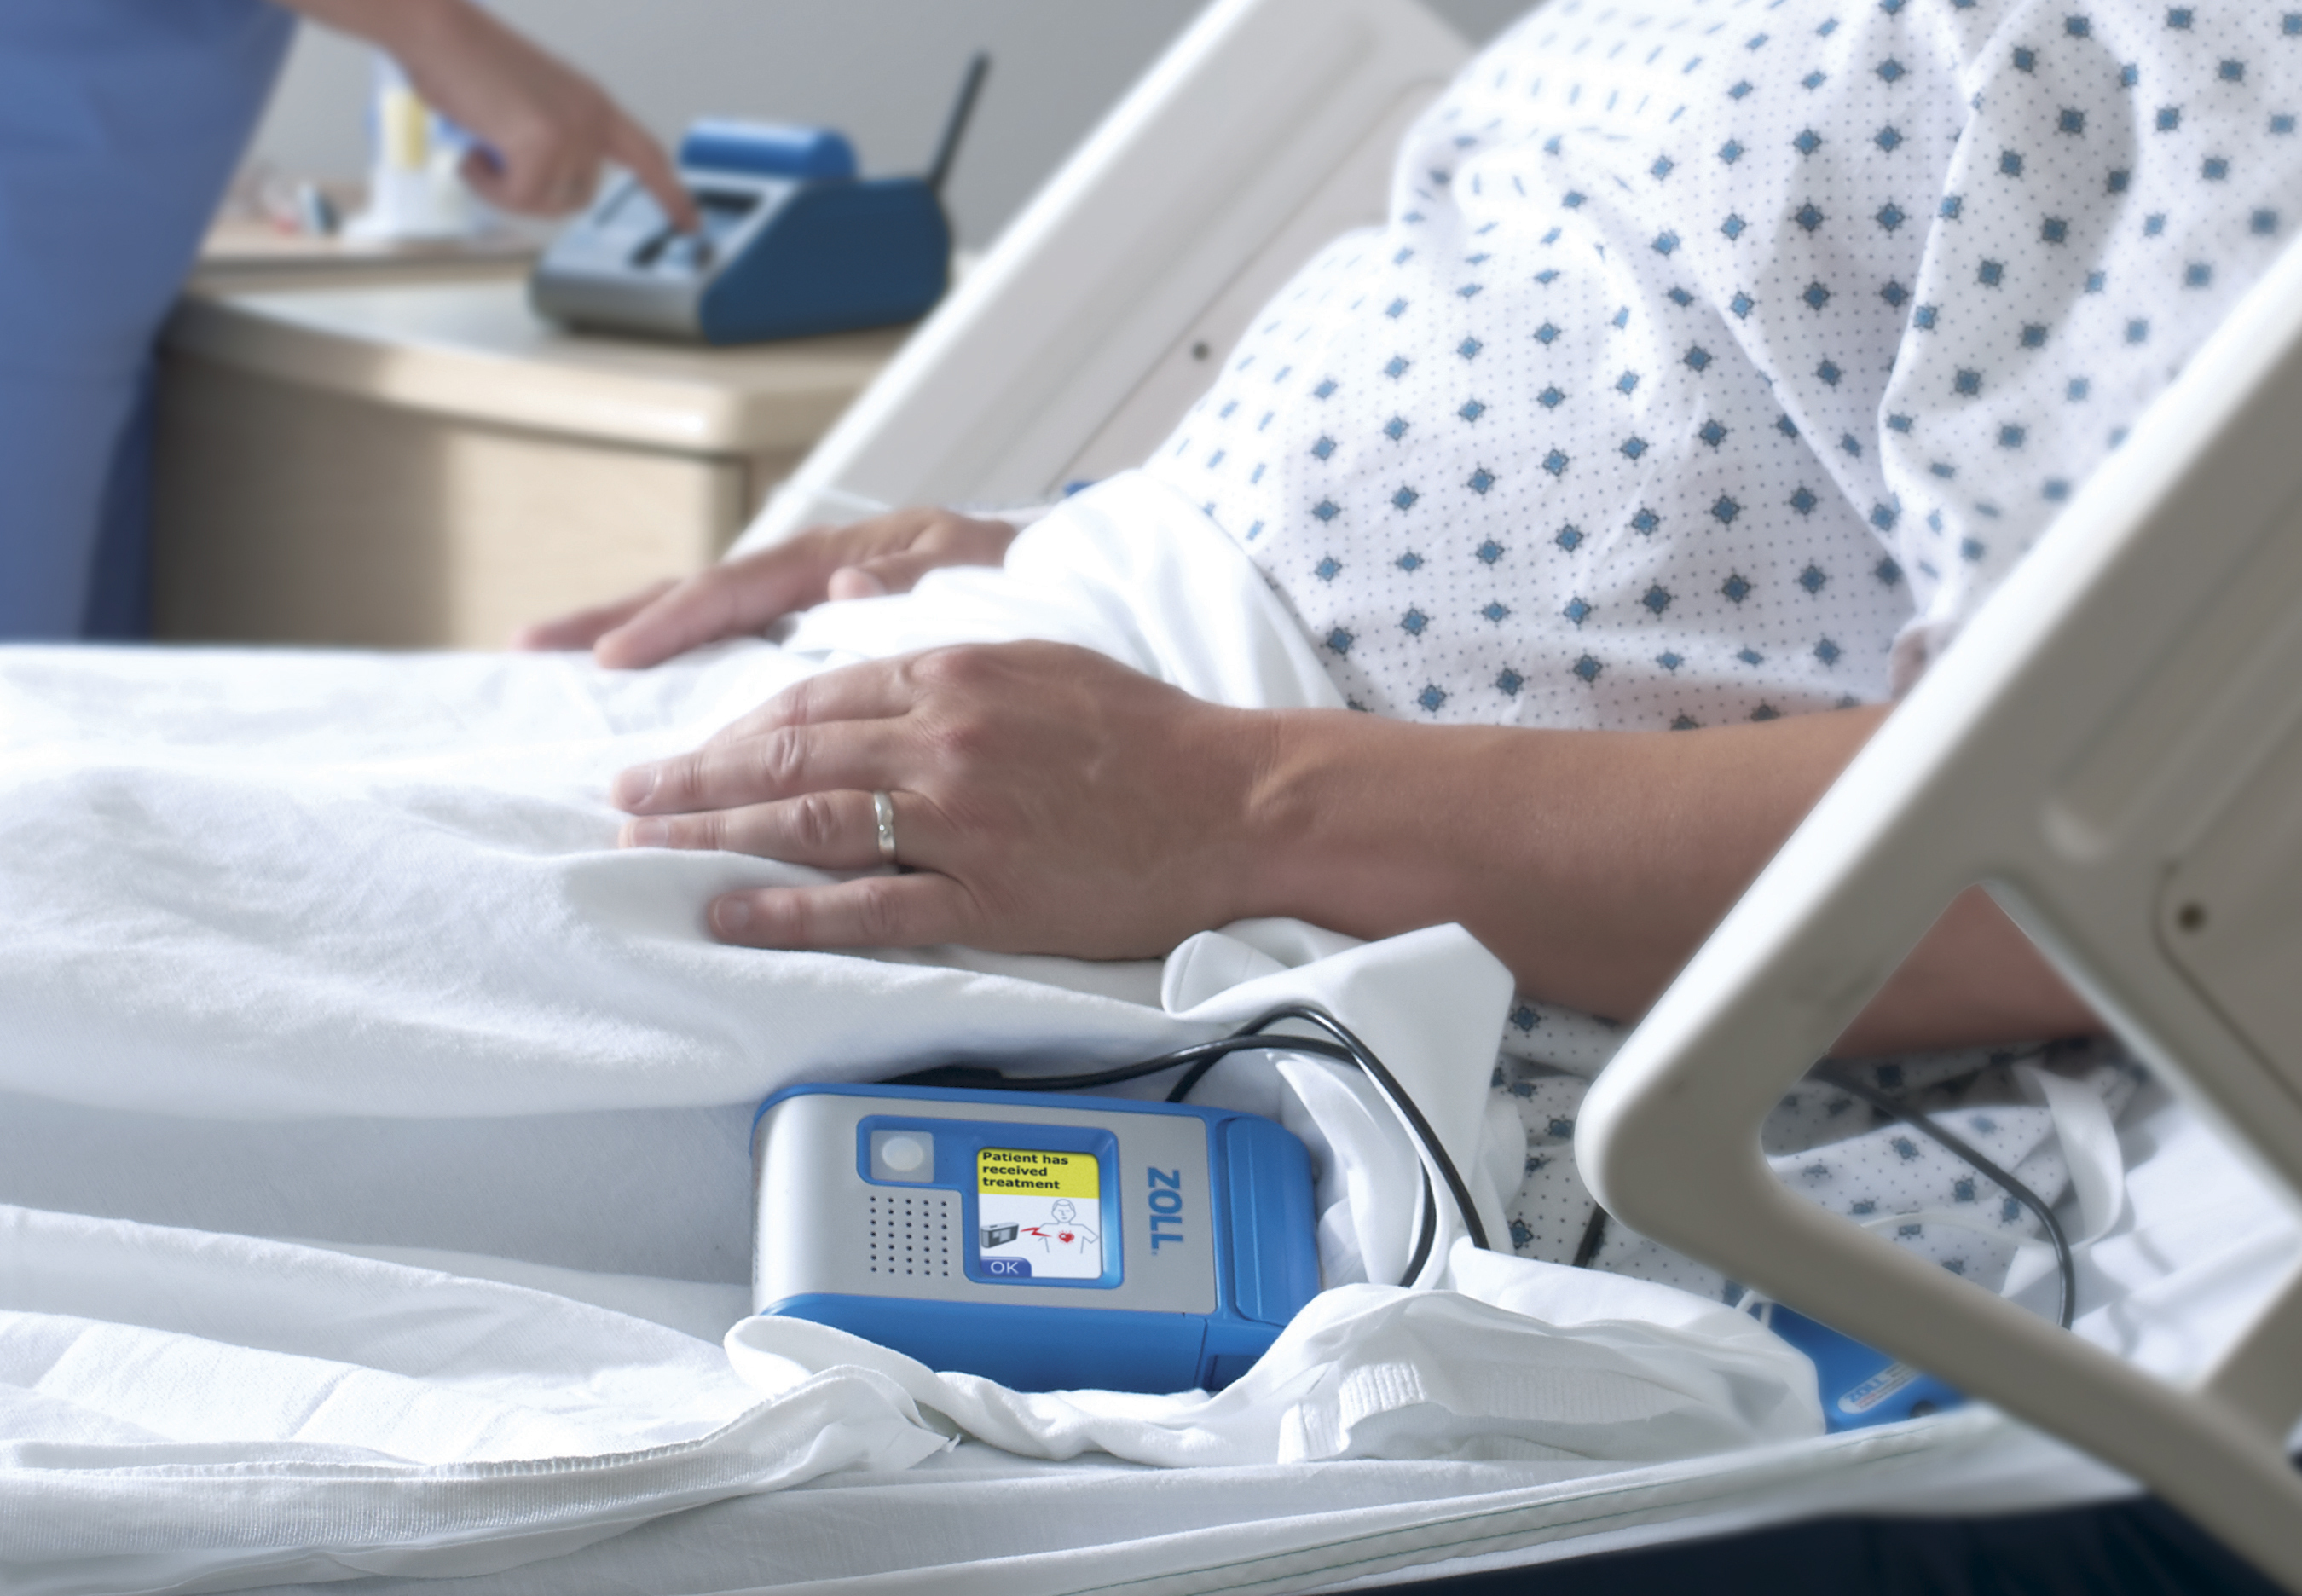 The ZOLL Hospital Wearable Defibrillator approved by FDA (Photo: Business Wire).